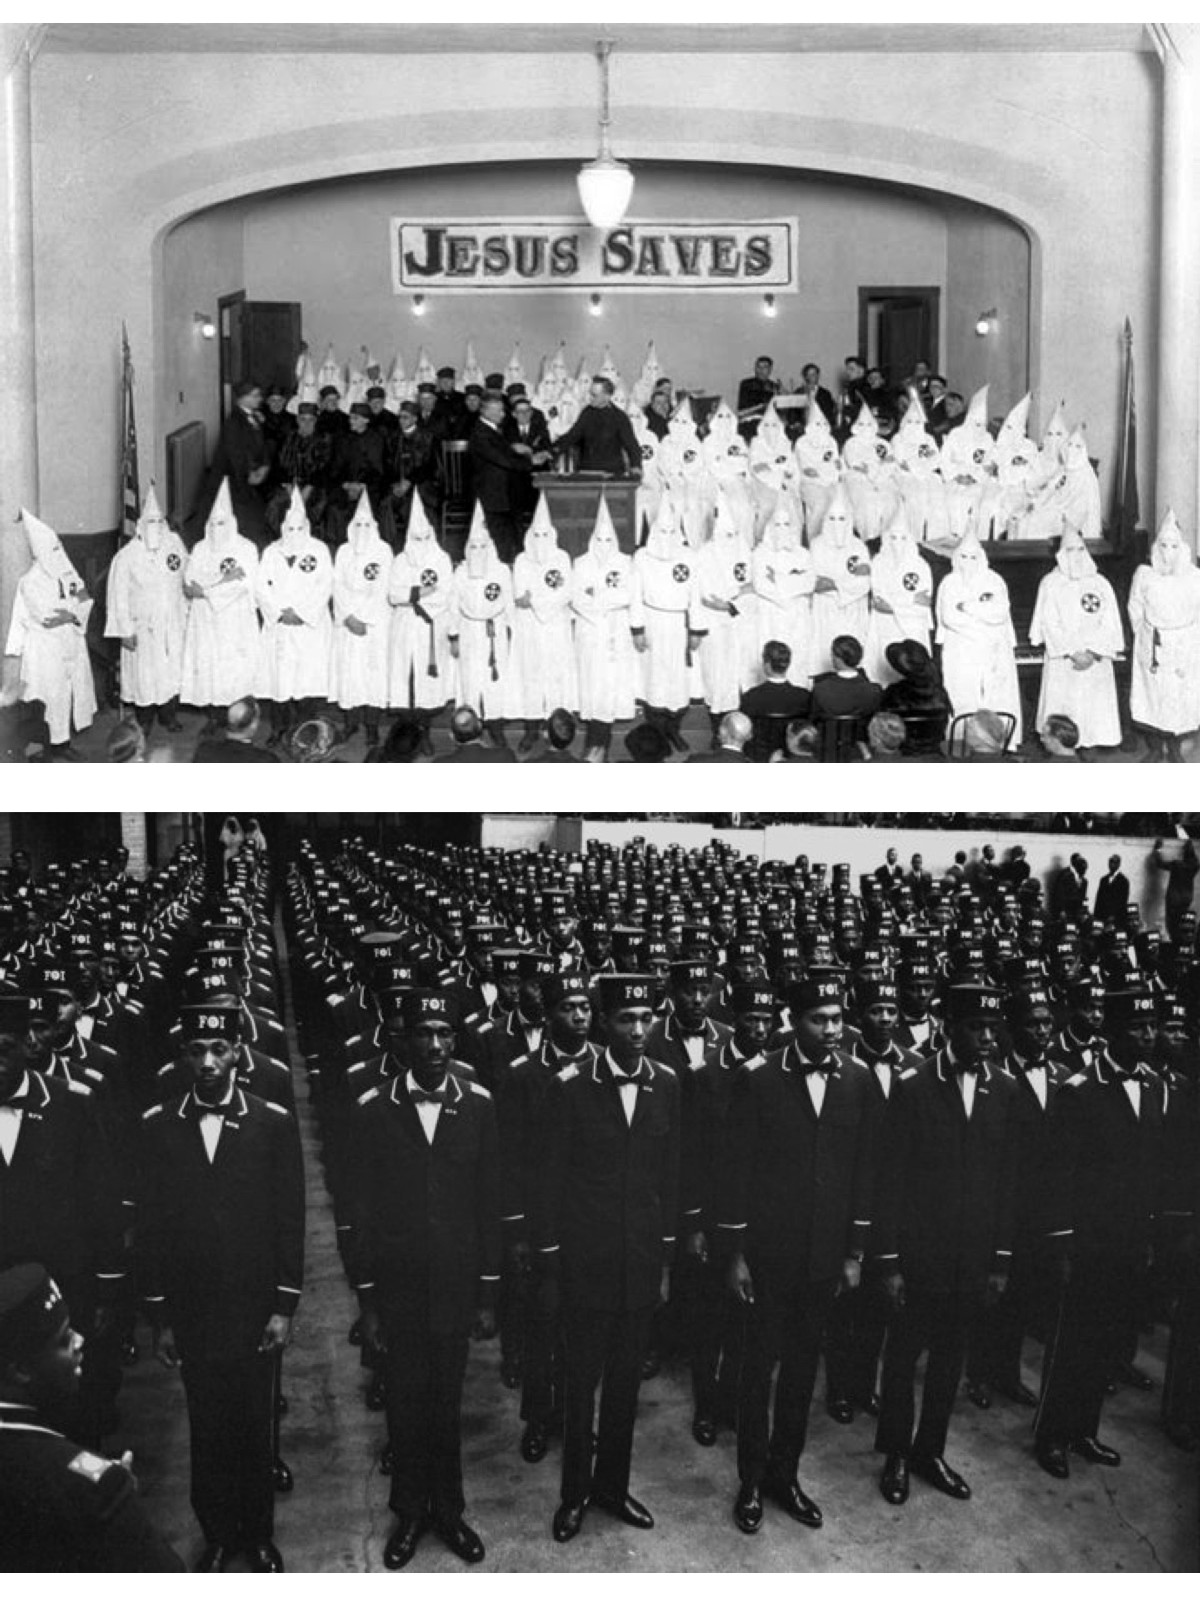 Top Image: Robed and hooded Ku Klux Klan members share a stage with members of the Royal Riders of the Red Robe, a Klan auxiliary for foreign-born white Protestants. Date: c. 1922; Photography Credit Unknown, image belonging to Oregon Historical Society | Bottom Image: Uniformed men in the uniform of the Fruit of Islam, a subset of the Nation of Islam, stand at attention during the Savior's Day celebrations at General Richard Jones Armory, Chicago, Illinois, February 26, 1967. Photography Credit: Robert Abbott Sengstacke/Getty Images